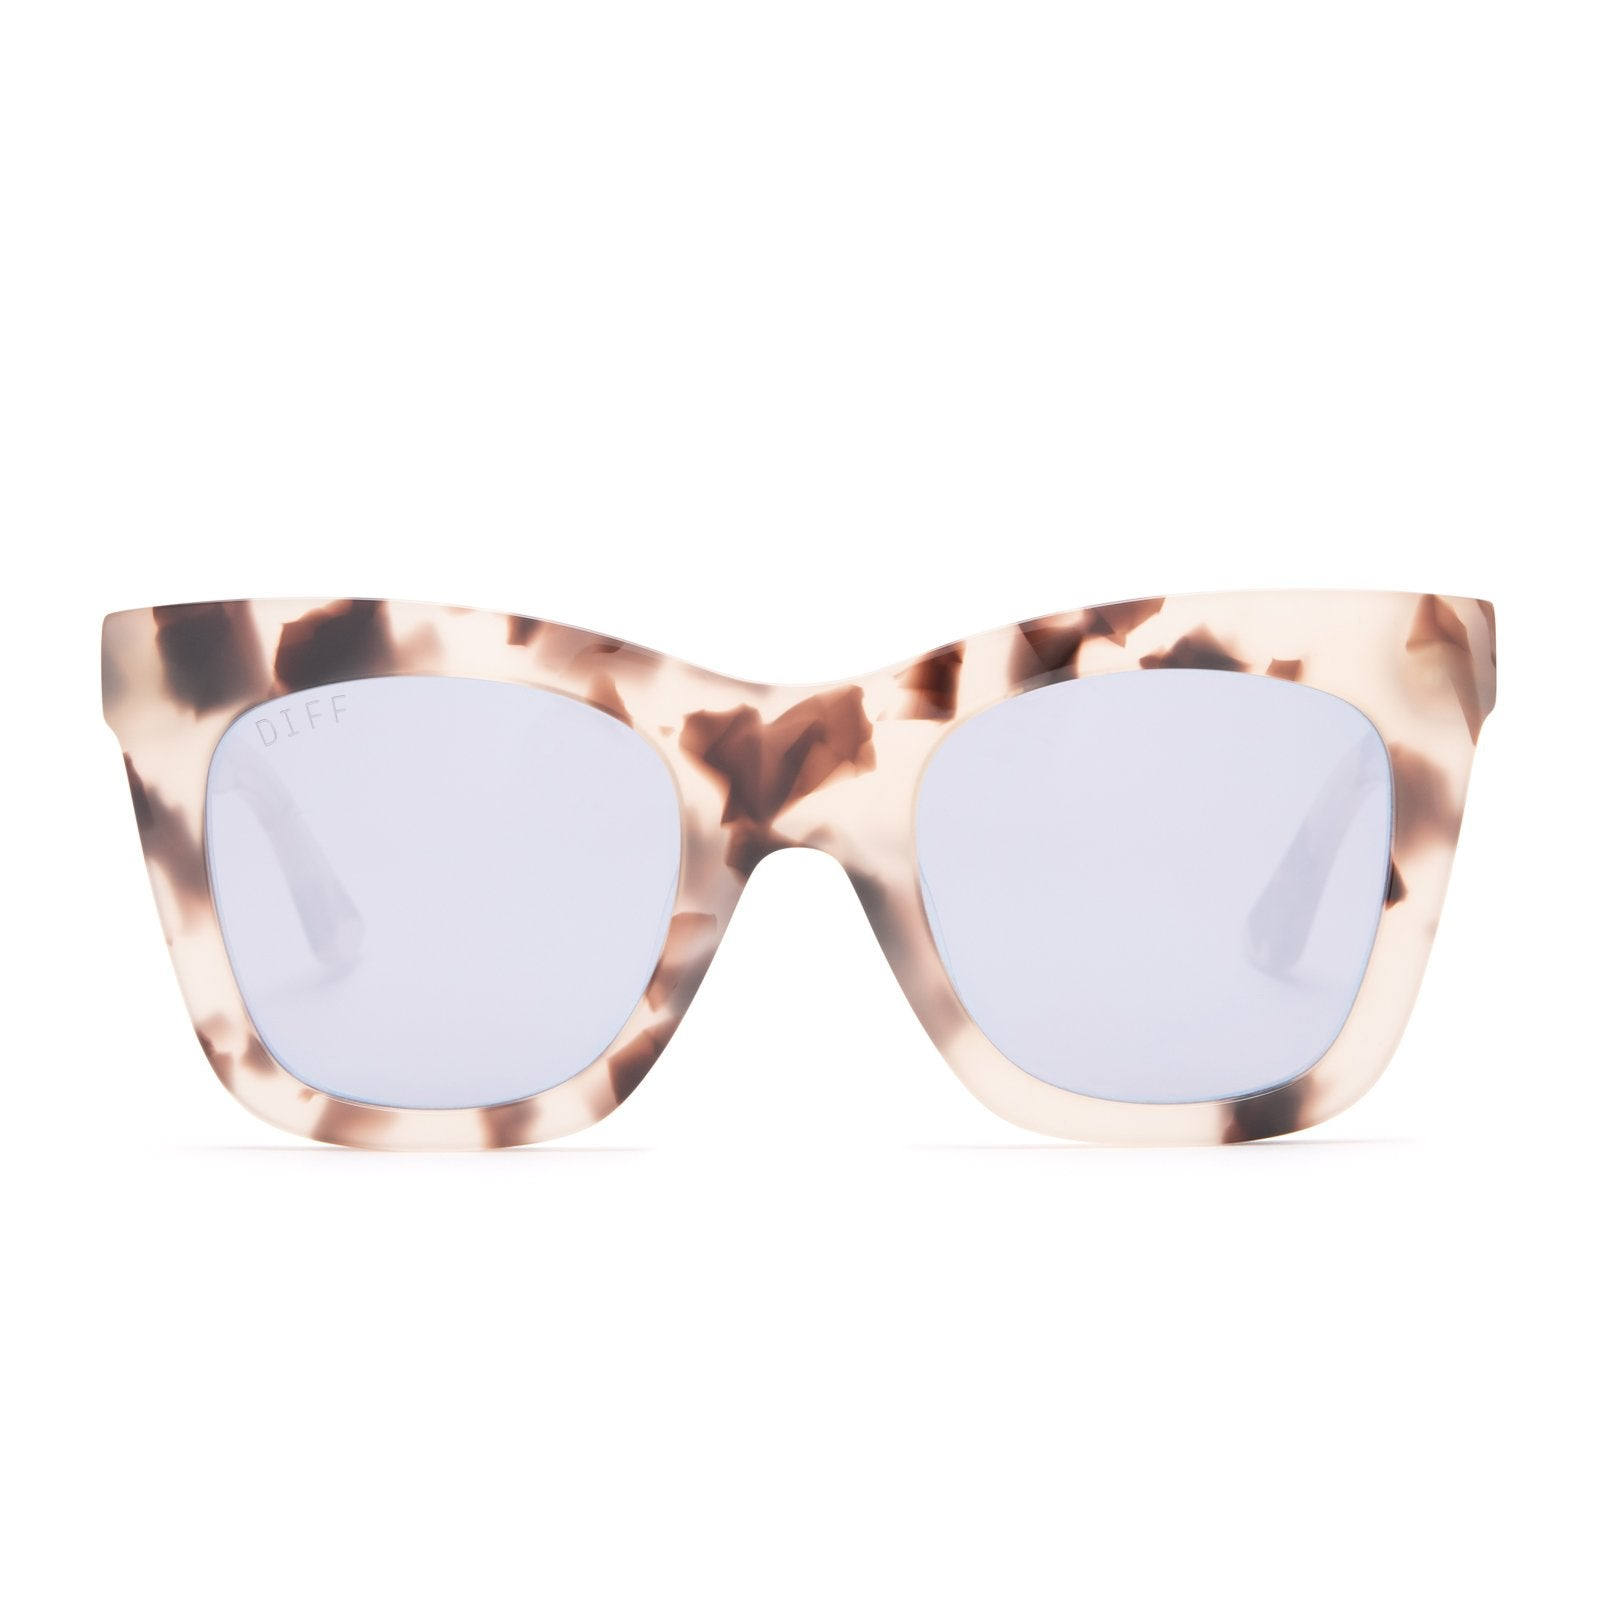 Lil Kaia sunglasses with cream tortoise l frames and lavender flash lens front view